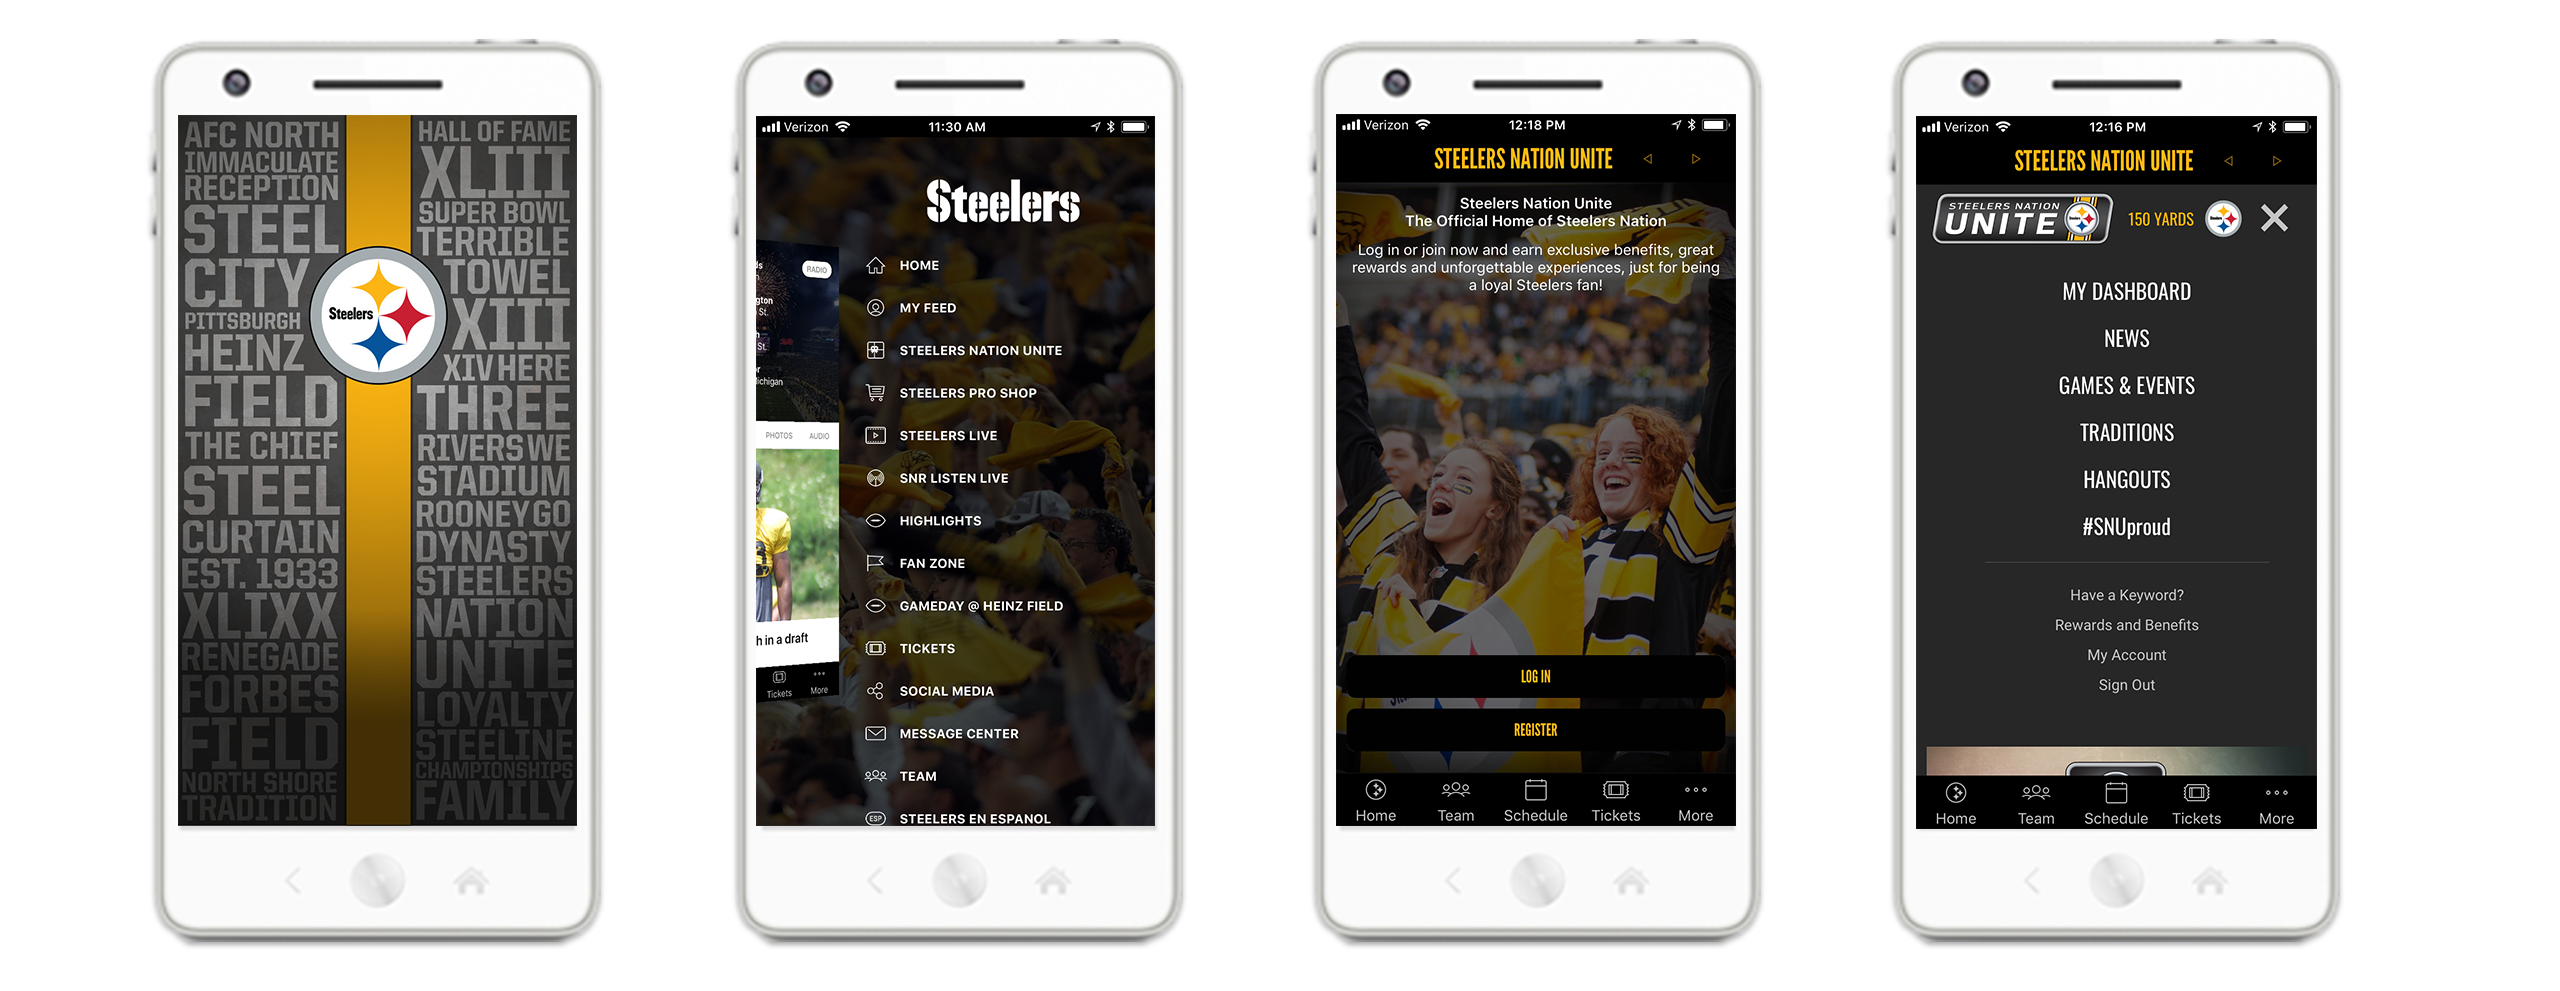 Download the Official App of the Pittsburgh Steelers